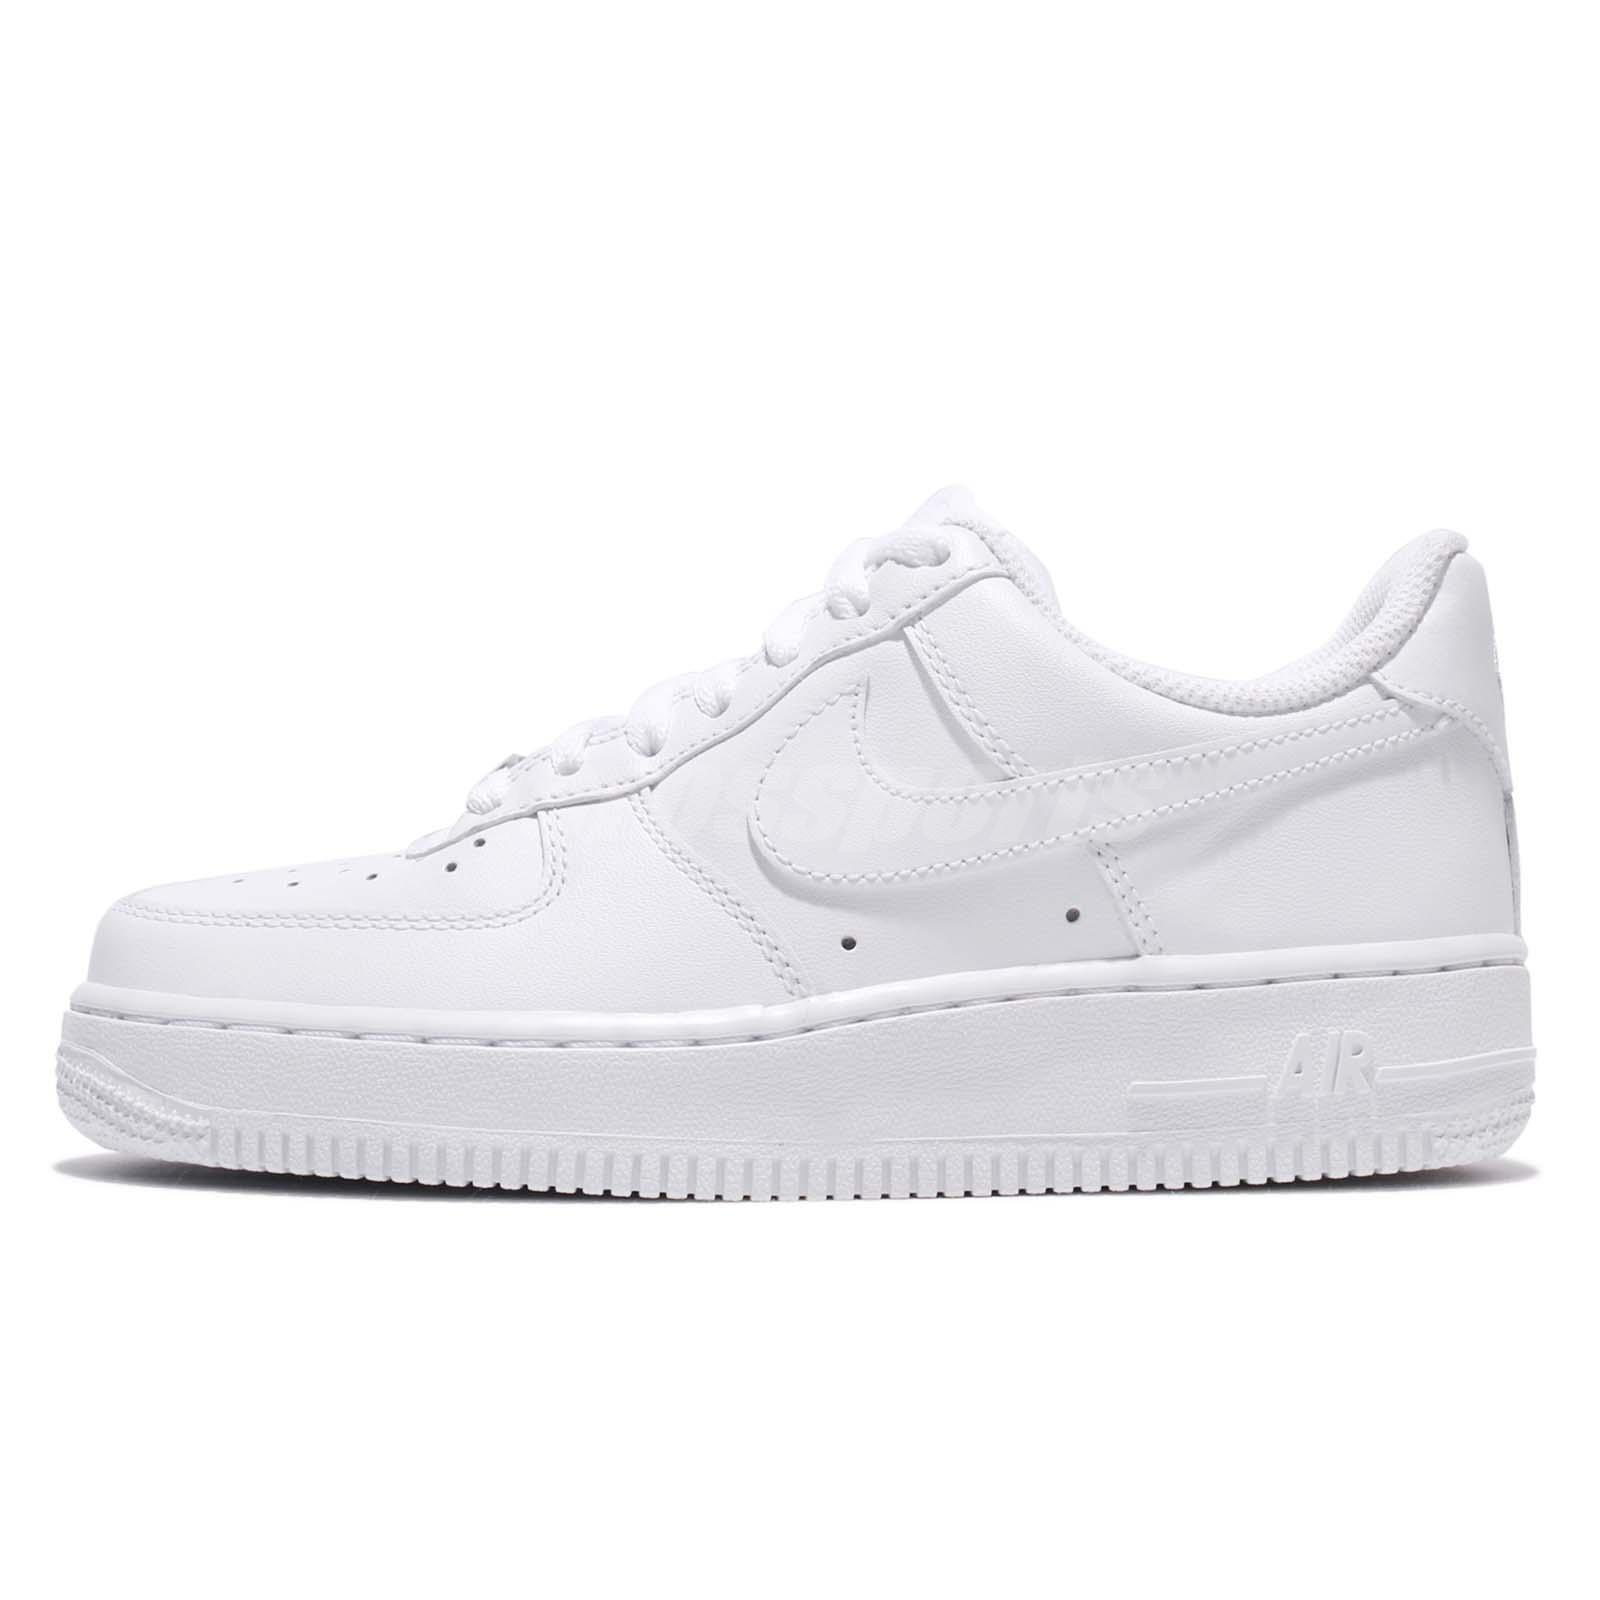 95468db083fe9 Wmns Air Force 1 07 Whiteout Womens Classic Shoes AF1 Sneakers 315115-112